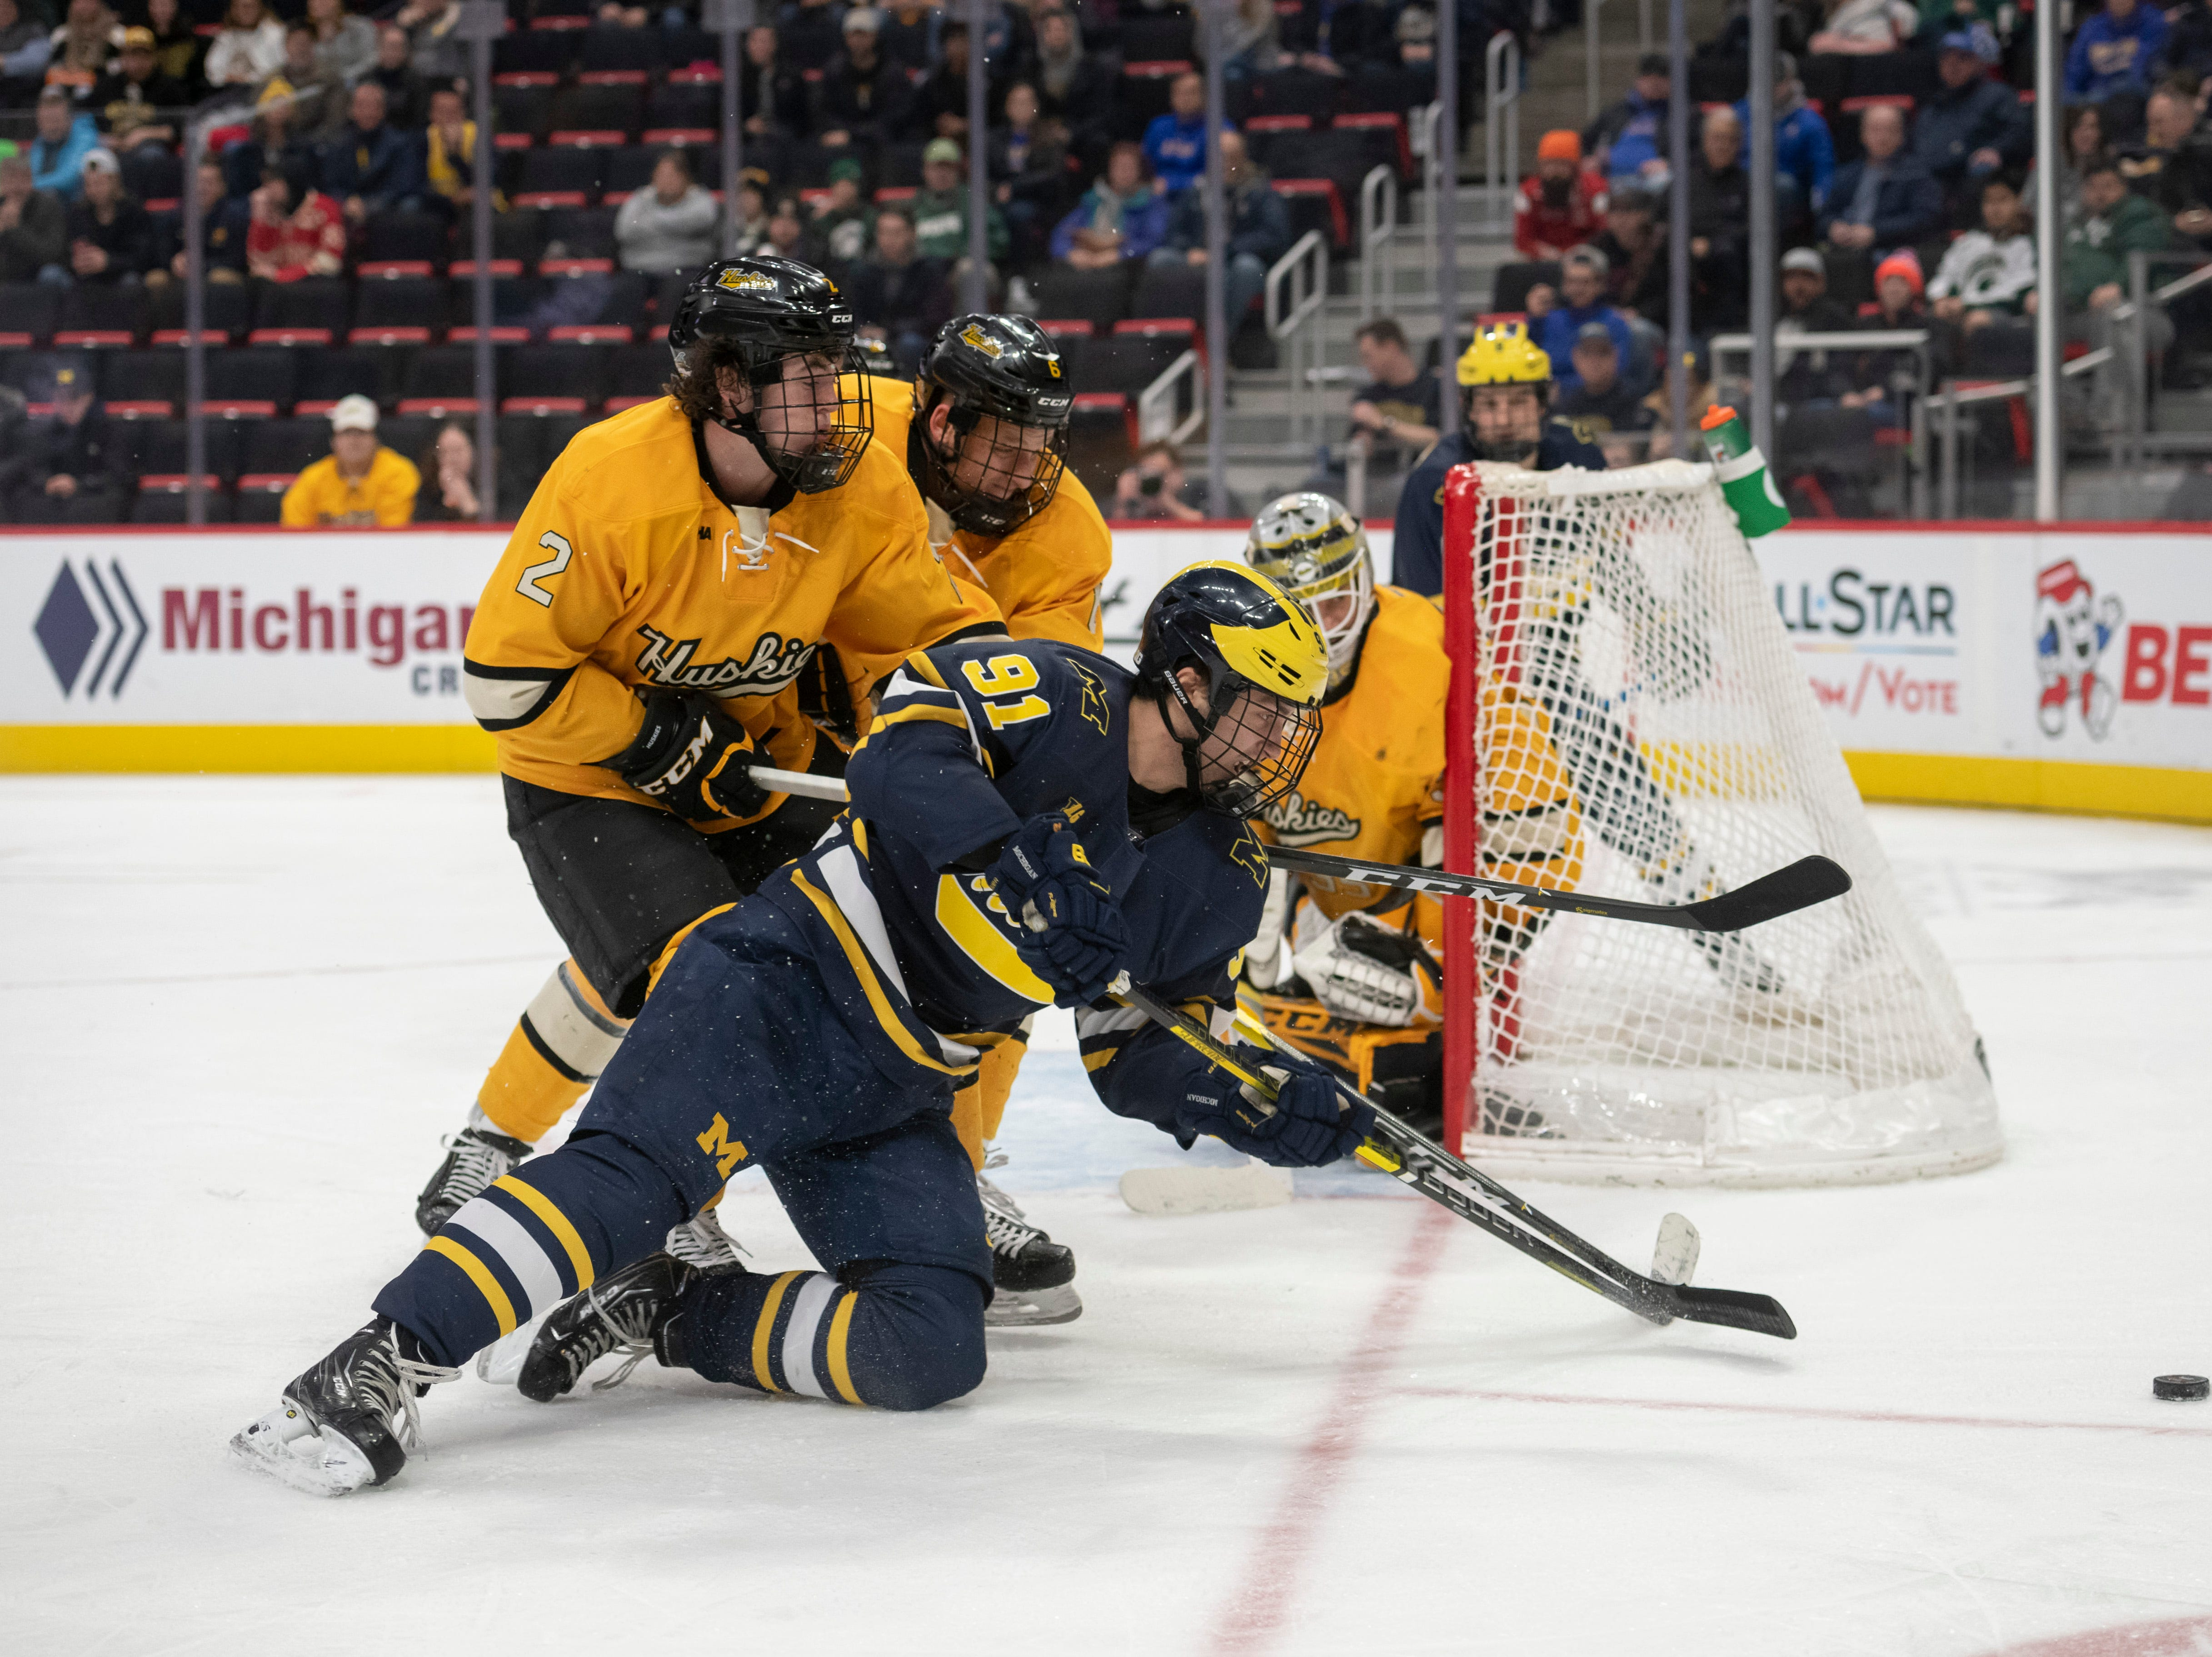 Michigan forward Nick Pastujov tries to get the puck past Michigan Tech's defense in the second period.